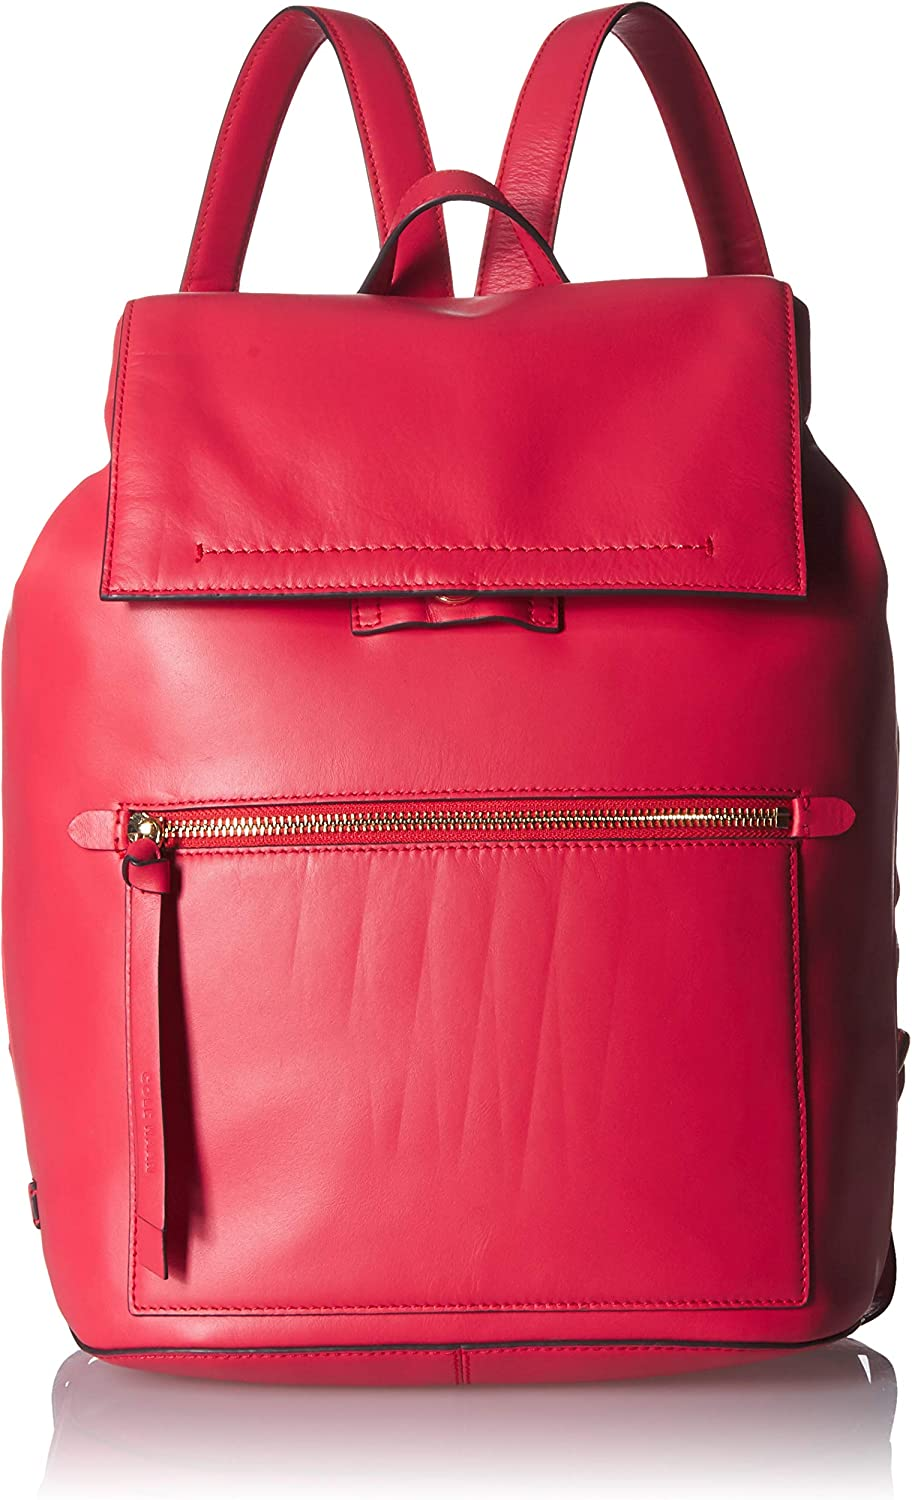 Cole Haan Kaylee Smooth Leather Backpack